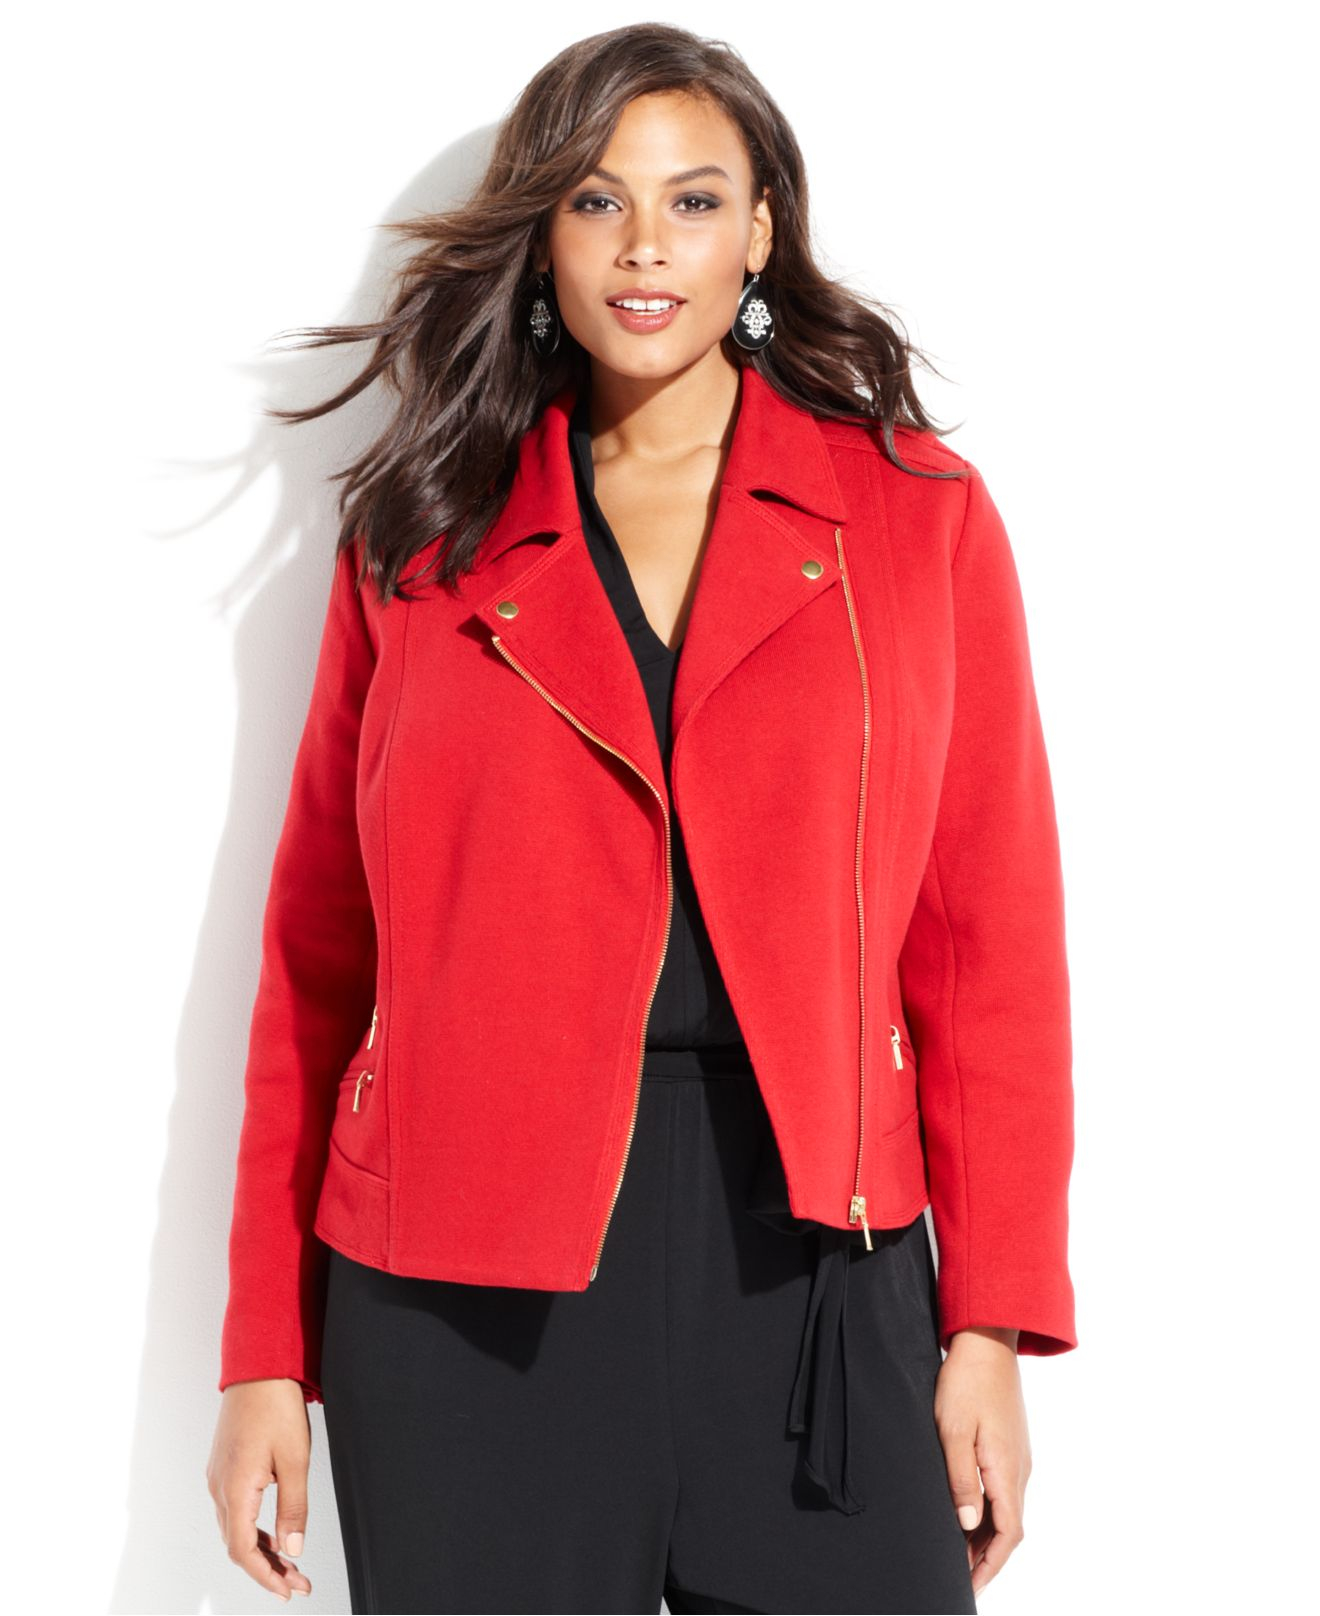 Shop Lane Bryant's collection of fashionable women's plus size coats, jackets and blazers in sizes